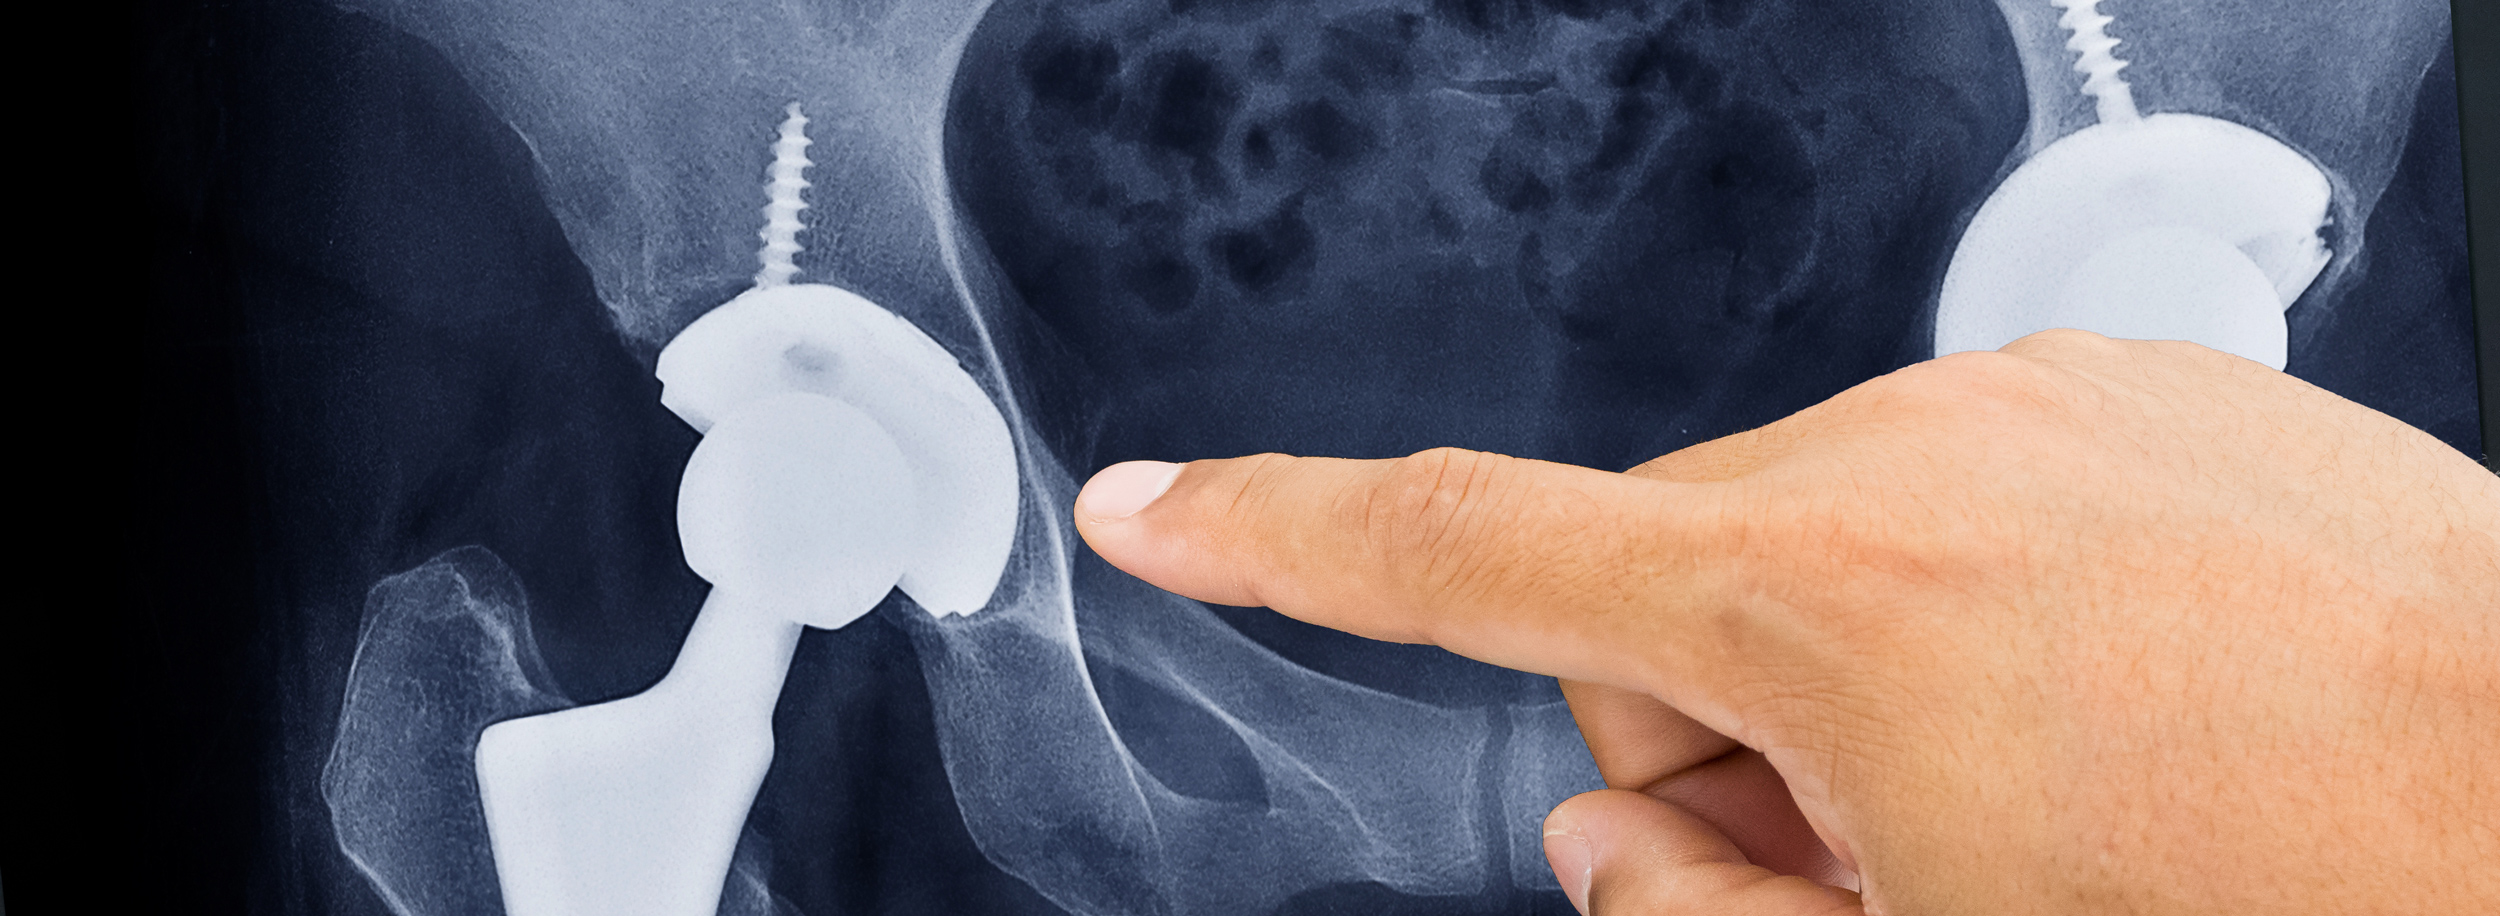 hand pointing at hip replacement